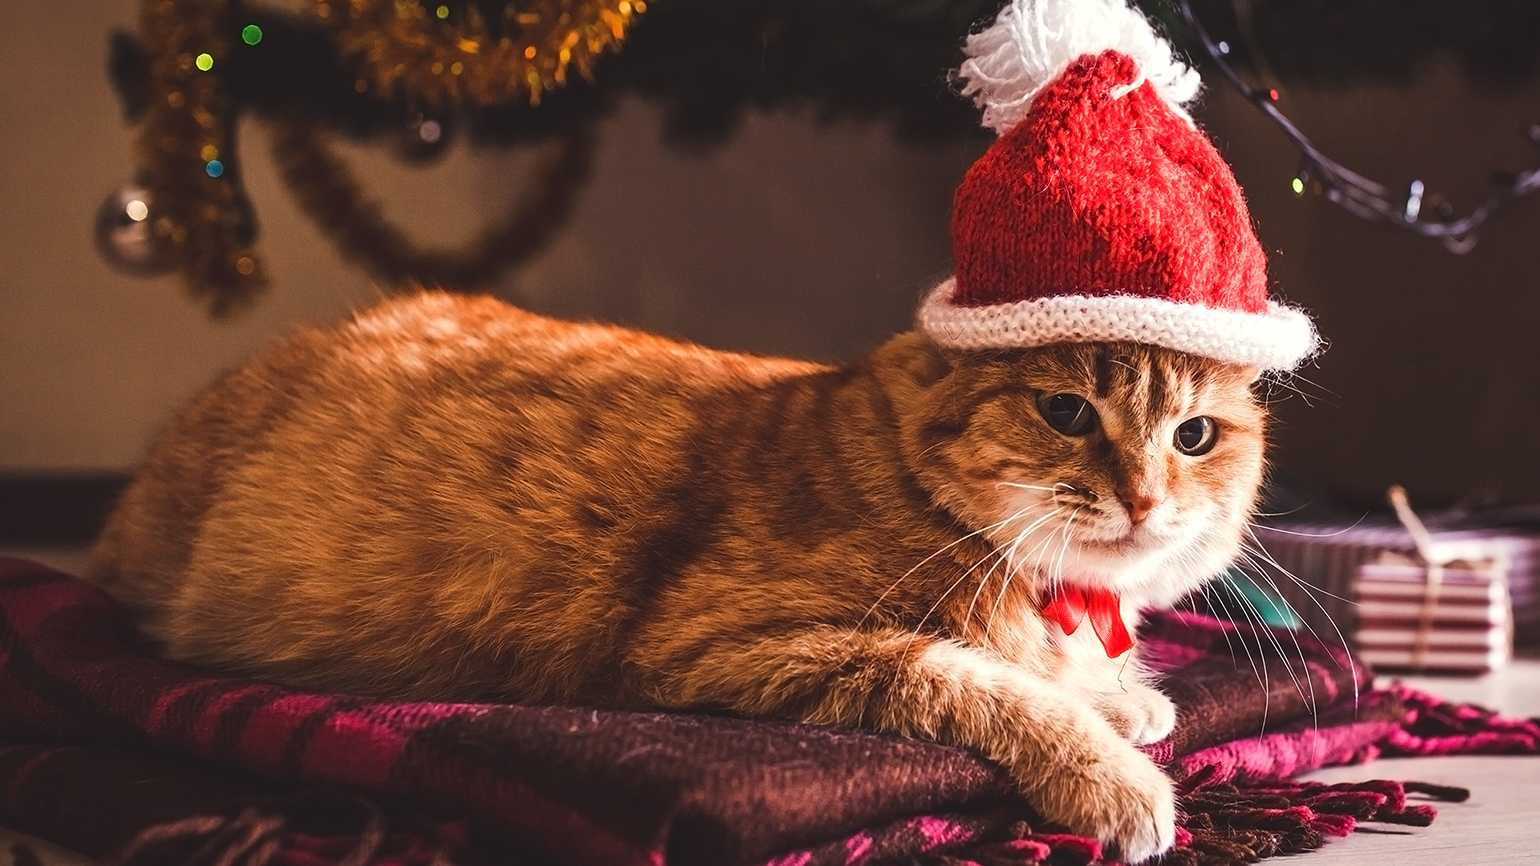 A Christmas cat